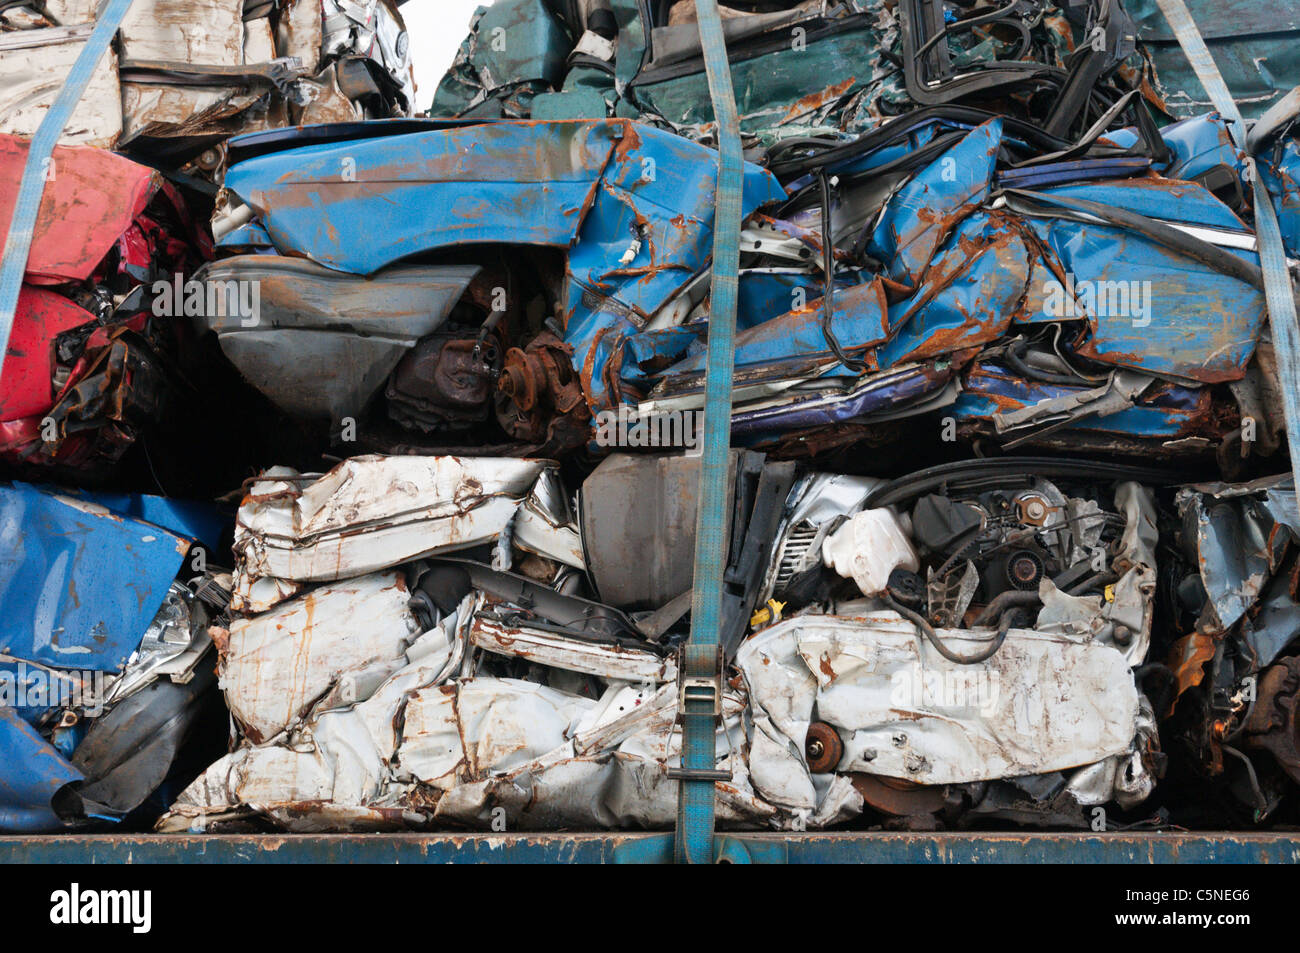 A pile of crushed car bodies strapped onto a transporter. - Stock Image